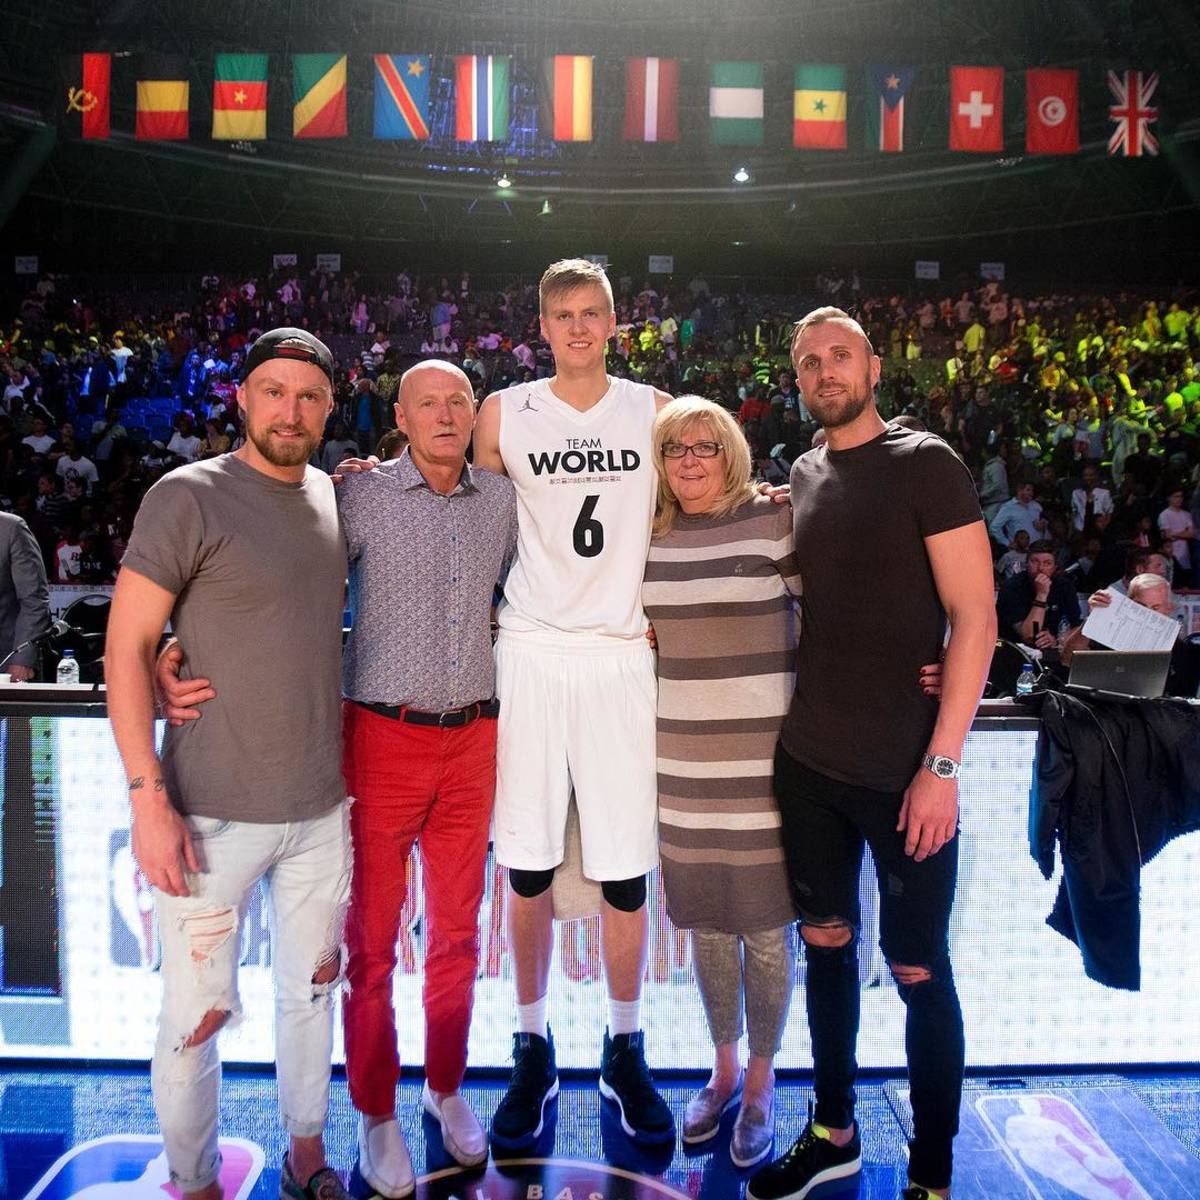 Kristaps Porzingis with his mum, dad, and two brothers.